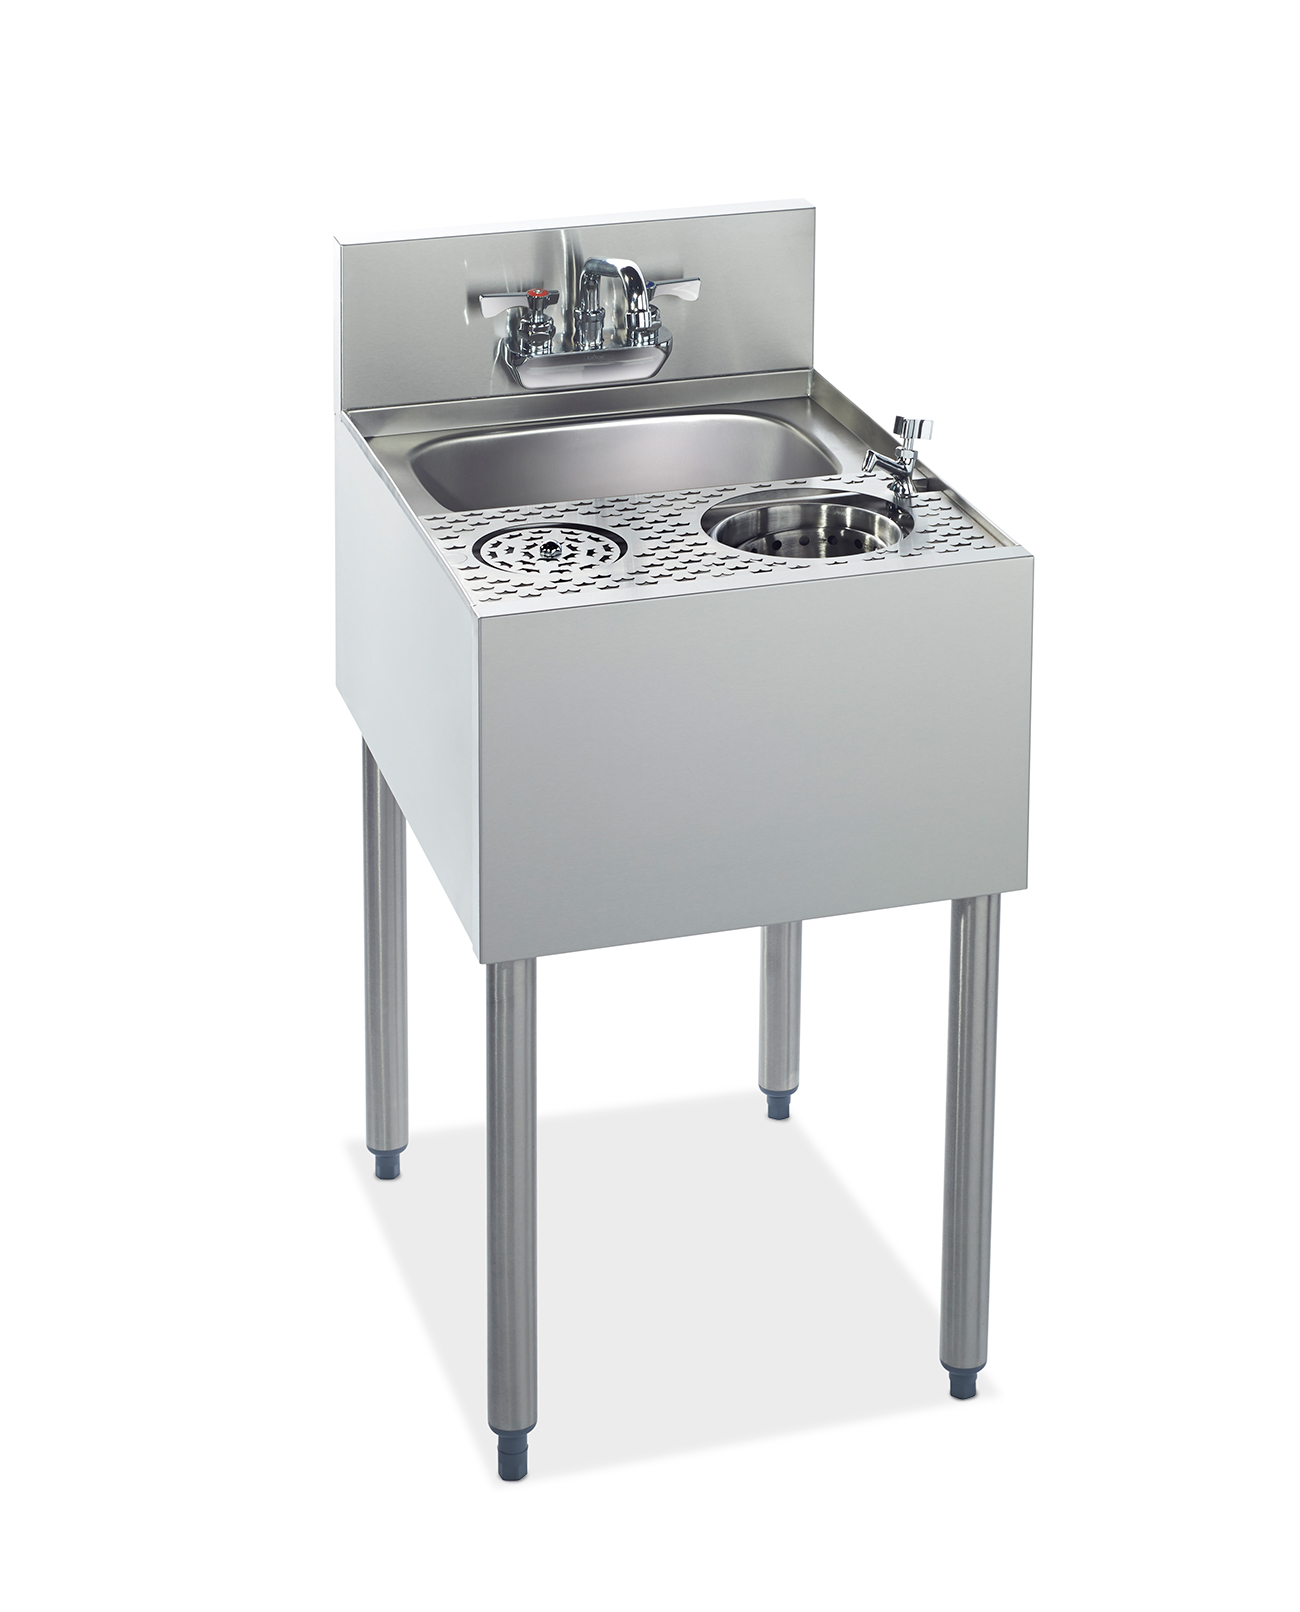 Krowne Metal KR18-MS18 underbar sink units